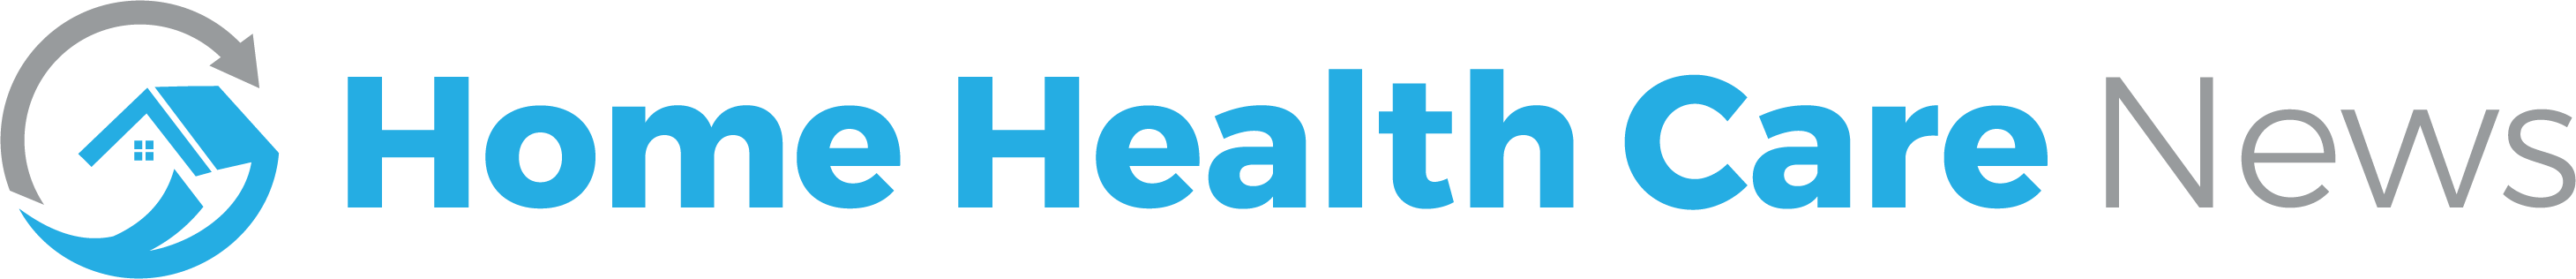 home health care news logo